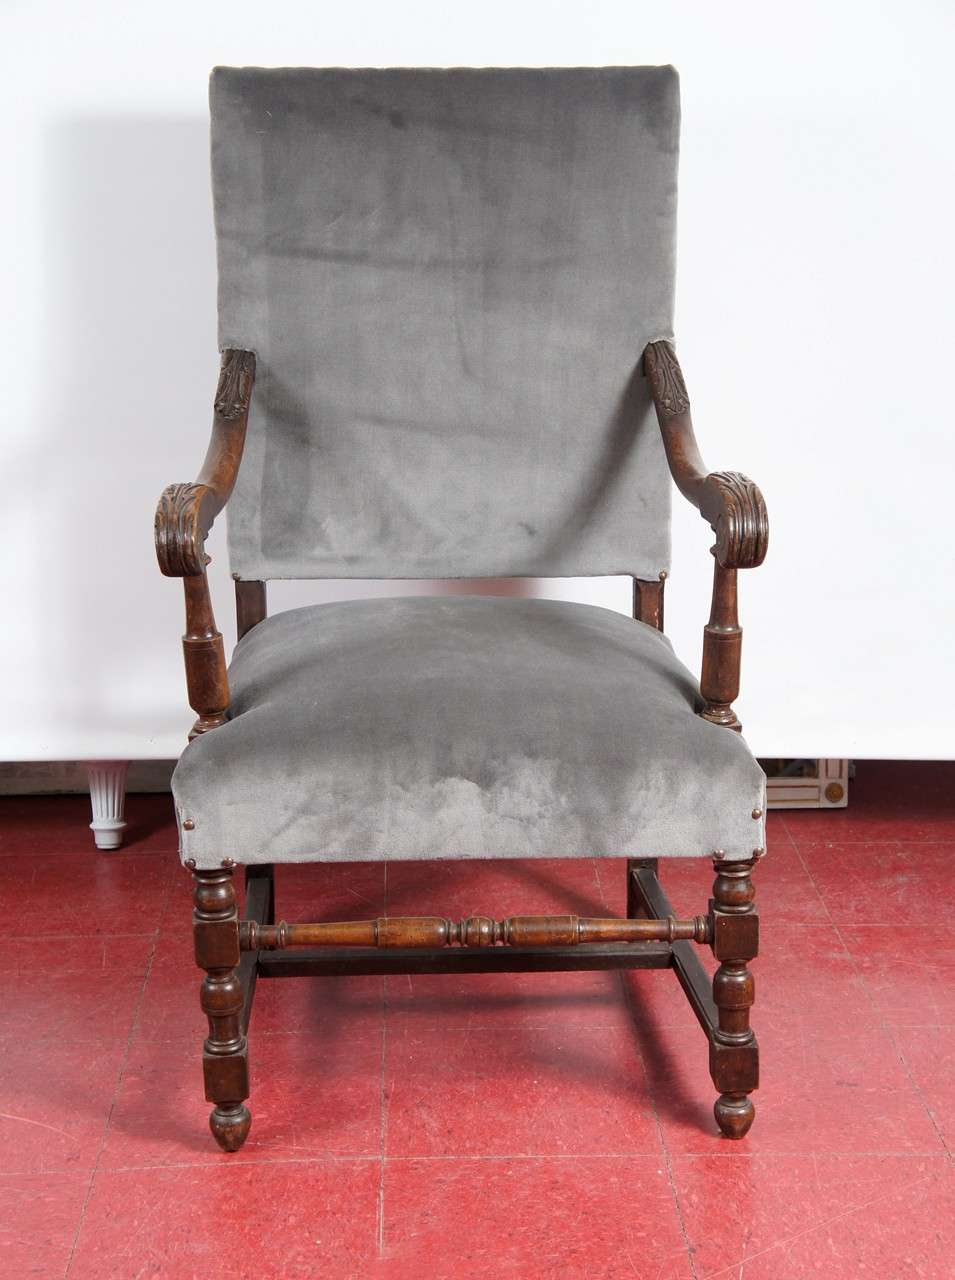 Antique louis xiv chair - Louis Xiv Style Throne Arm Chair 2